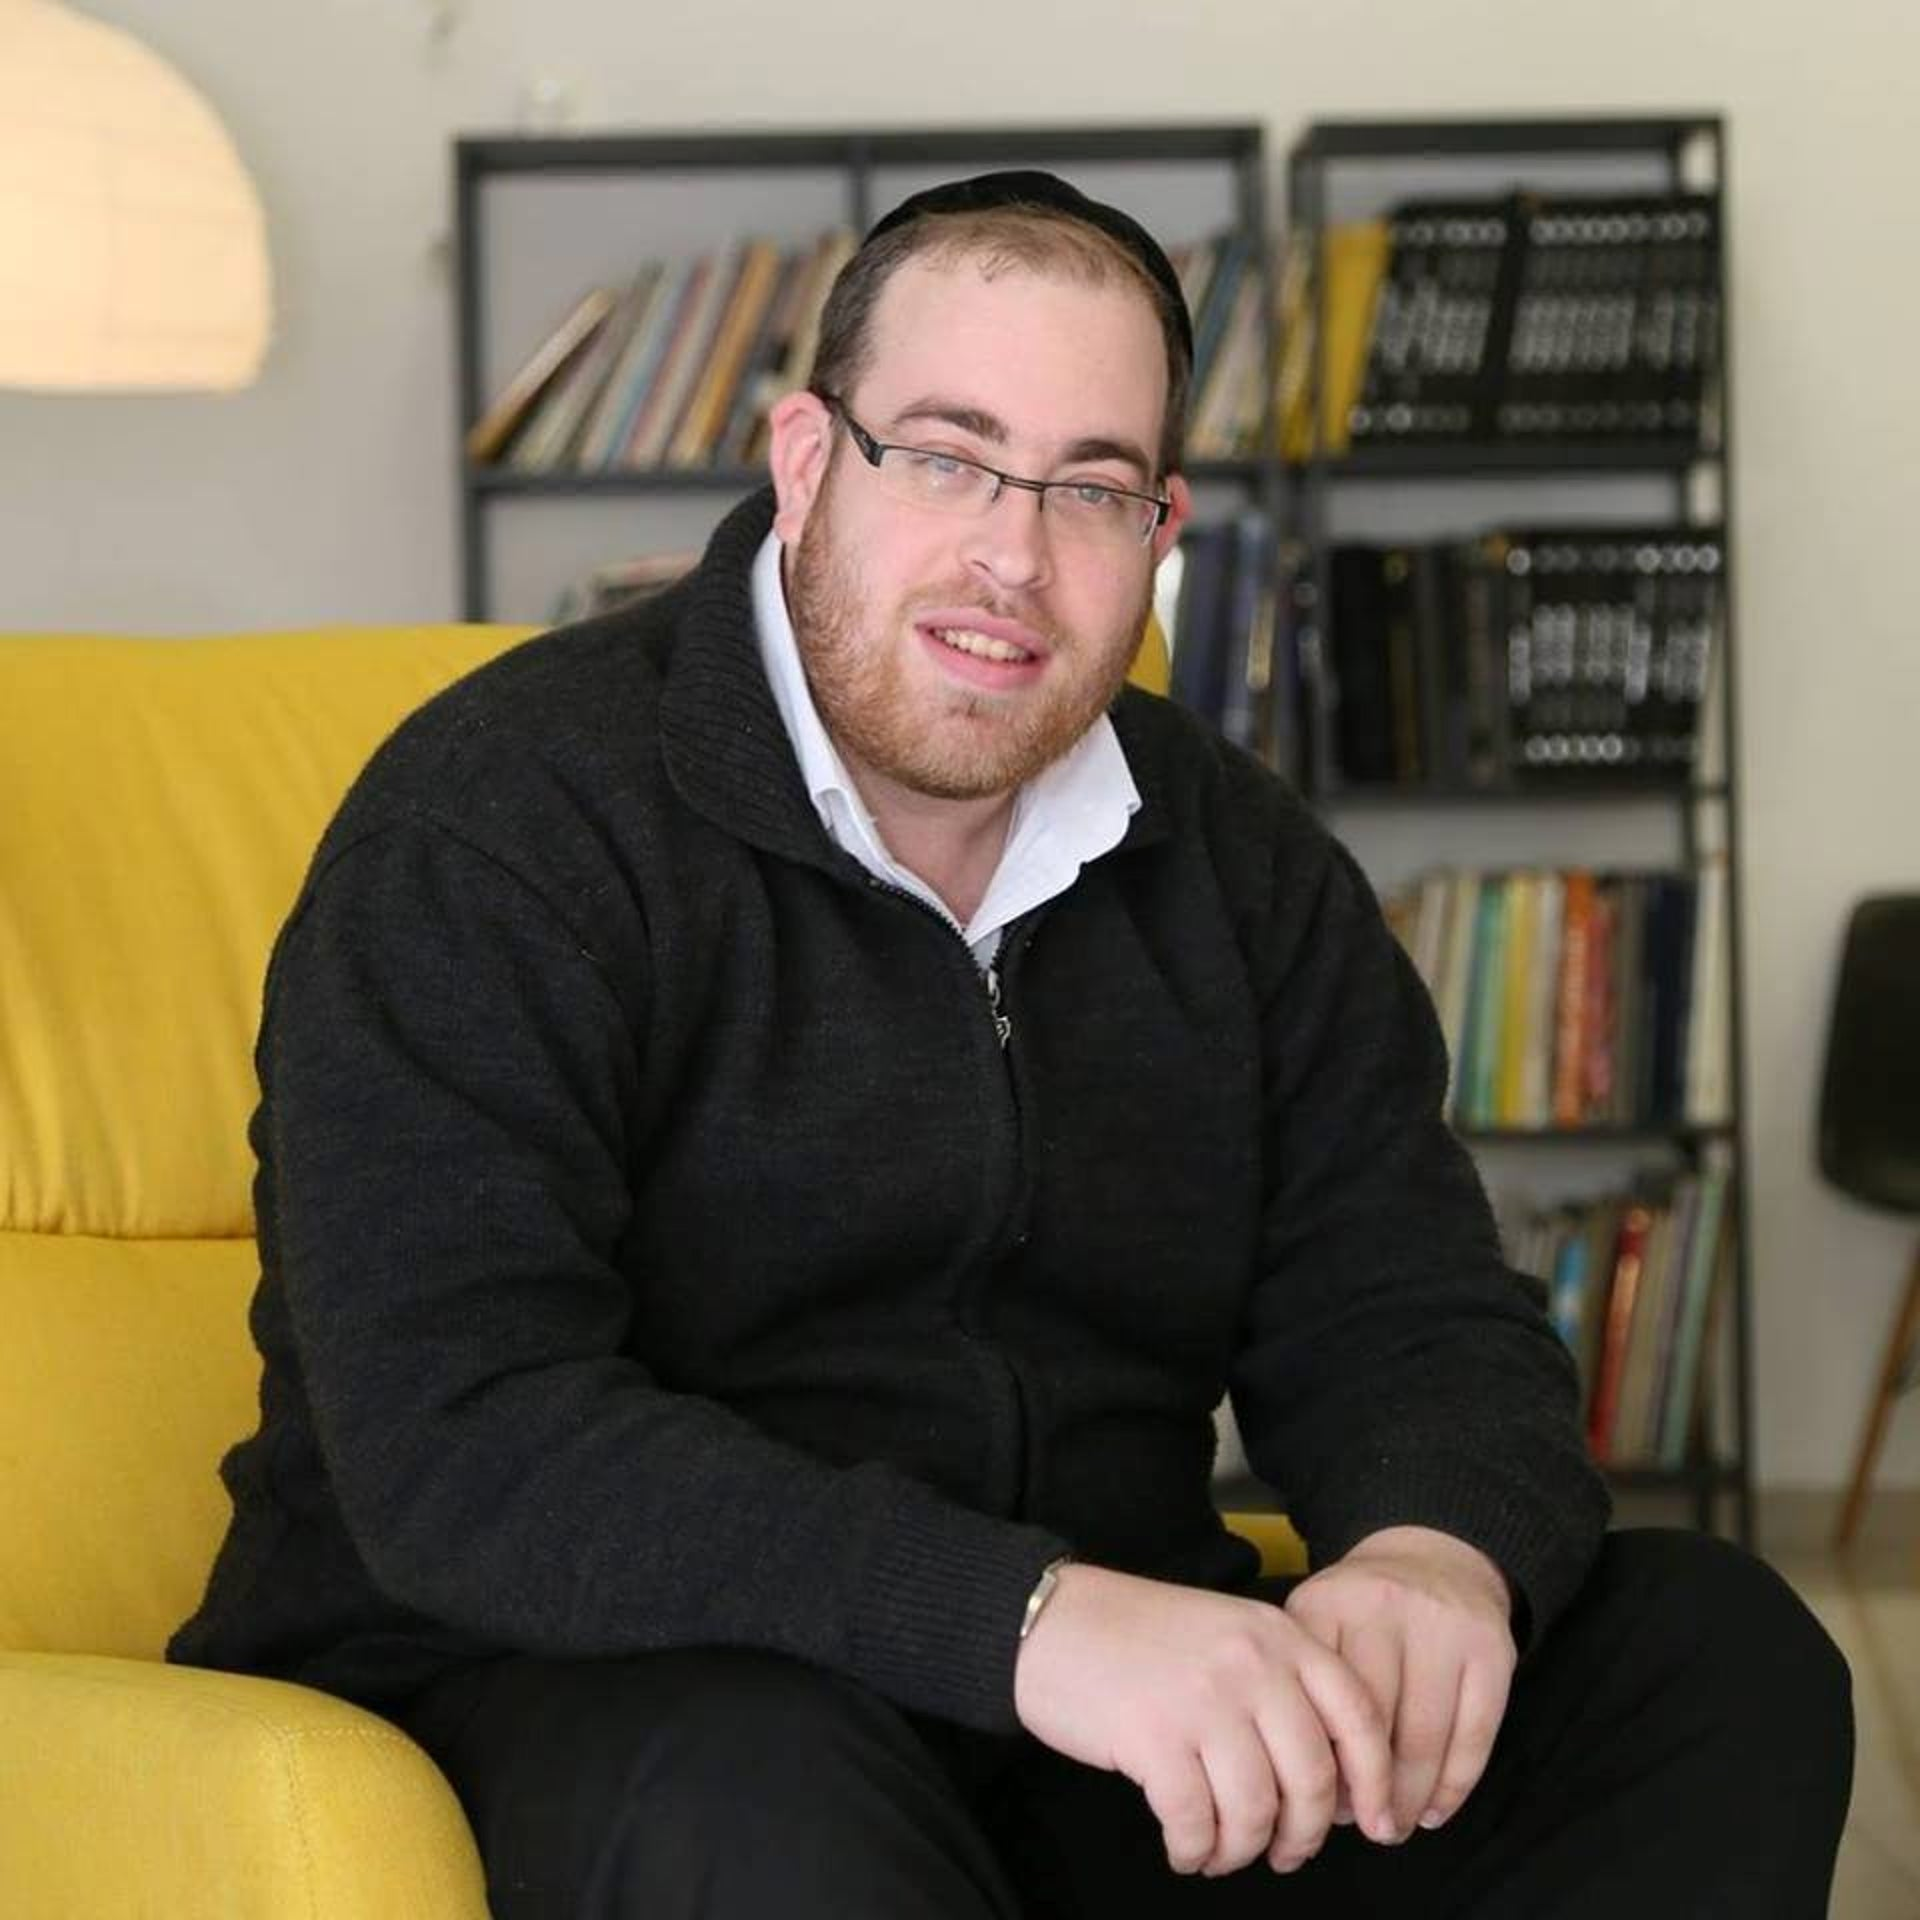 Boaz Ben-Ari, the founder of the Haredim l'Shalom Facebook group, June 2017.